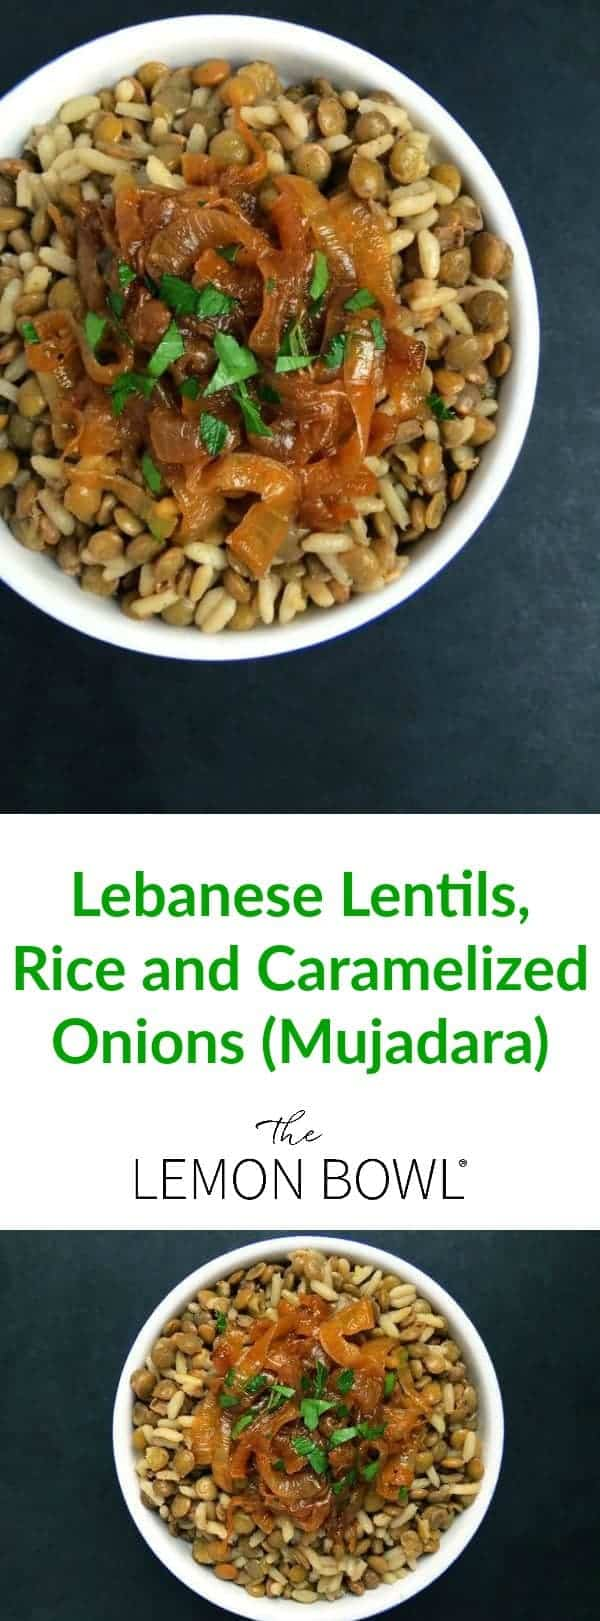 Lebanese Lentils Rice And Caramelized Onions Mujadara The Lemon Bowl 174